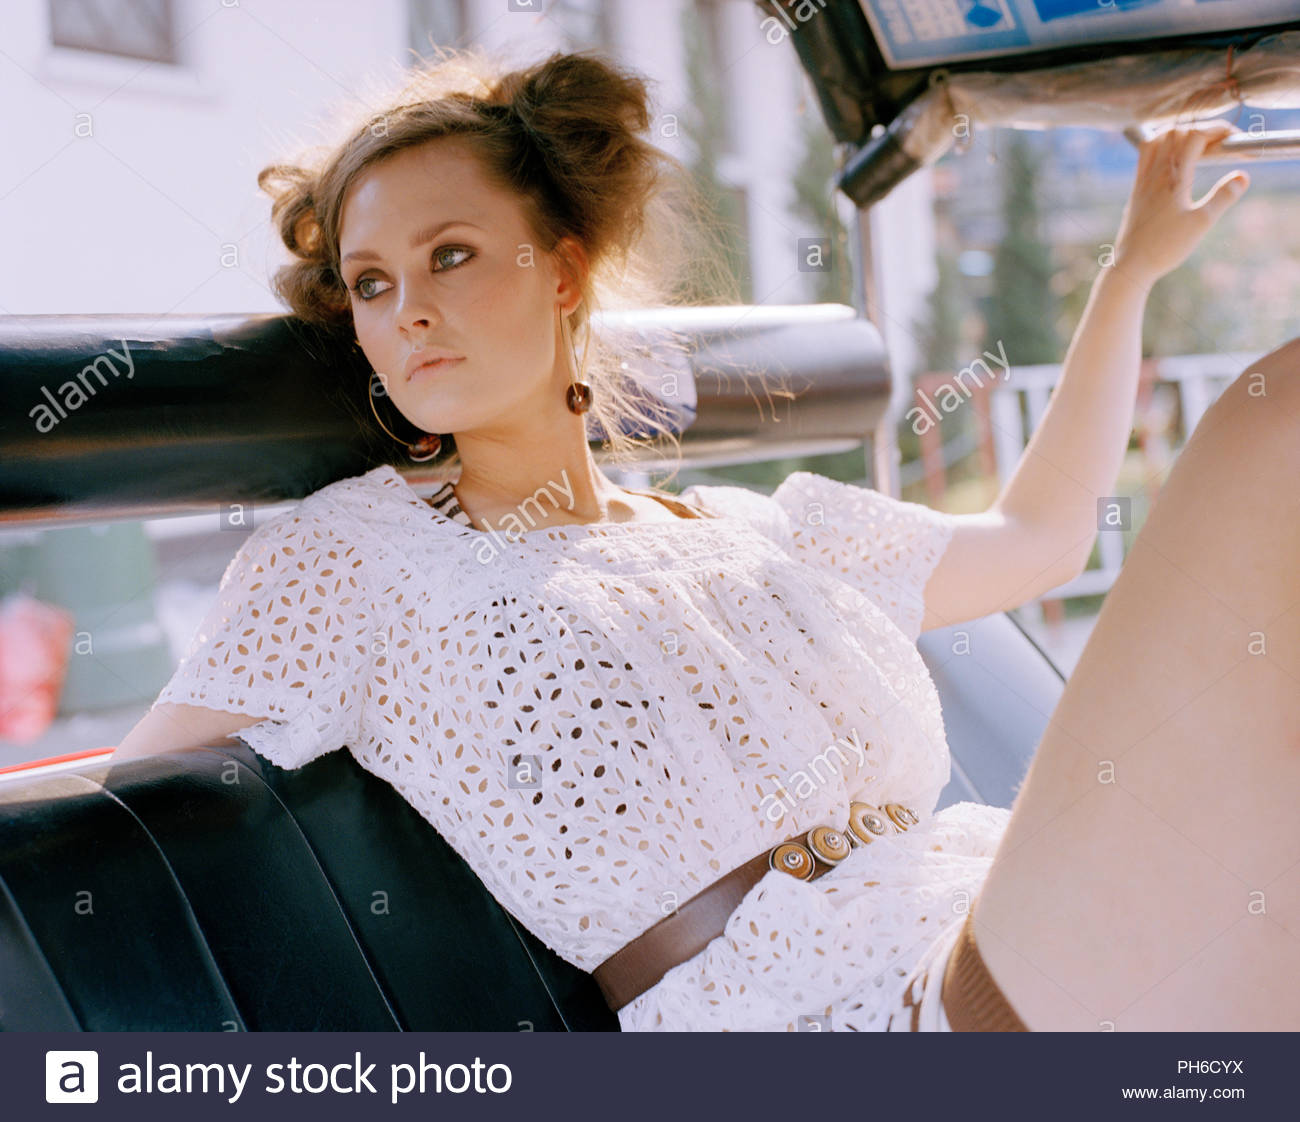 Young woman wearing white blouse with belt - Stock Image